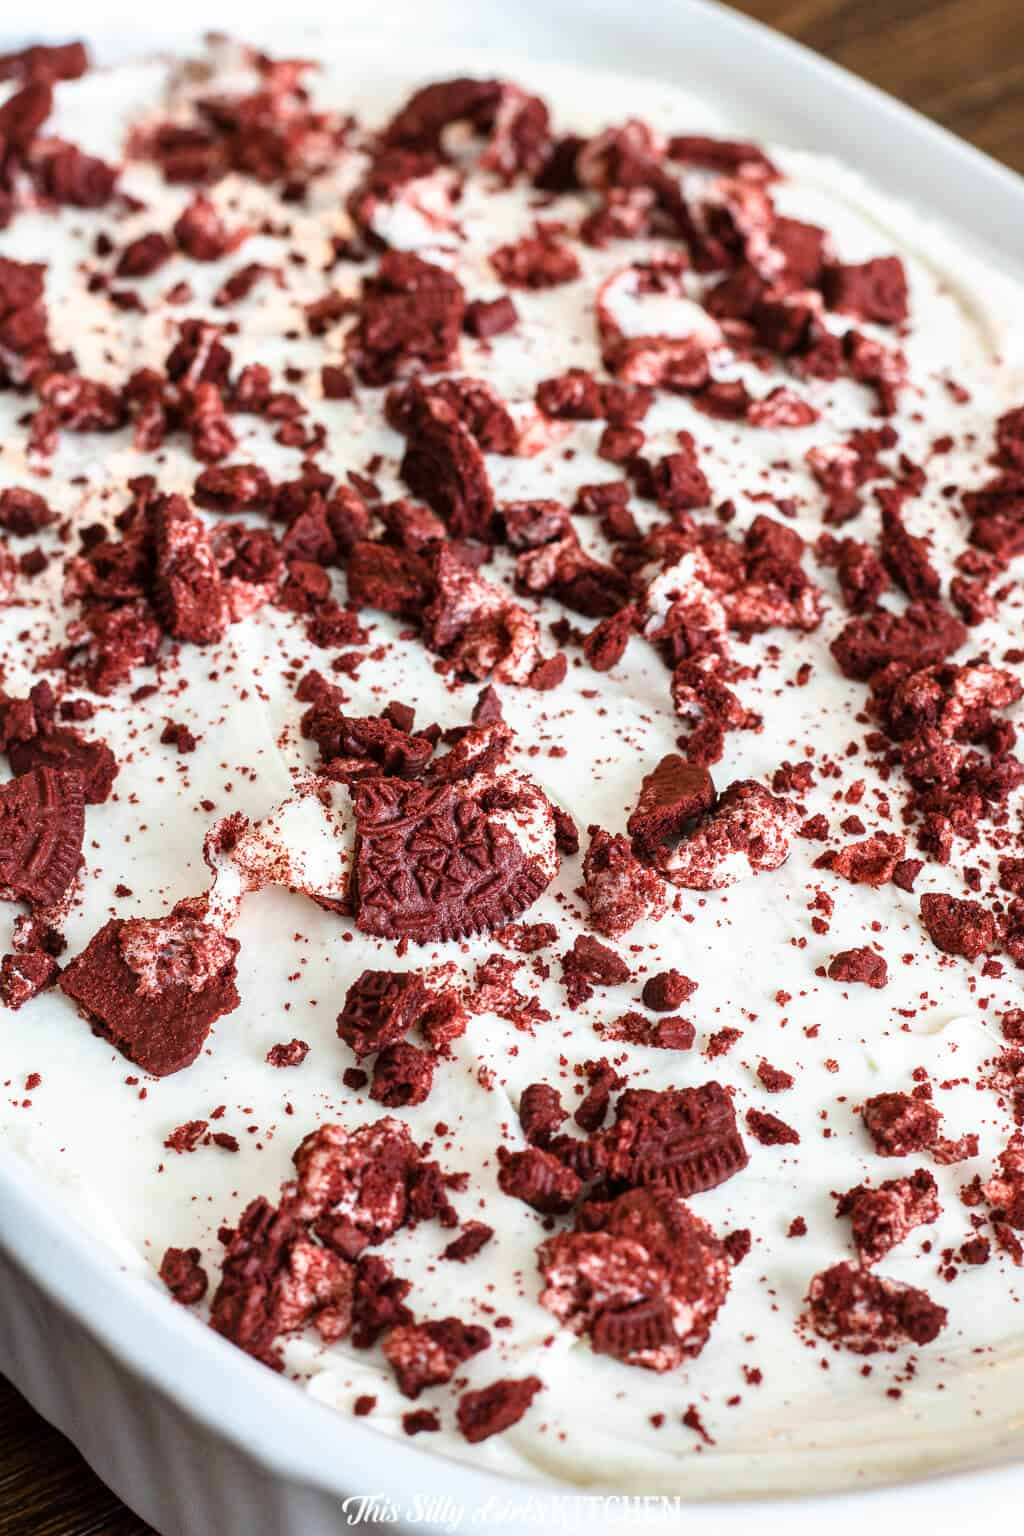 Red Velvet Cheesecake Cake, red velvet cake with a surprise swirl of cheesecake throughout, topped with cream cheese frosting and crushed red velvet Oreos. #recipe from thissillygirlskitchen.com #redvelvet #cake #redvelvetcake #cheesecake #cheesecakecake #redvelvetcheesecakcake